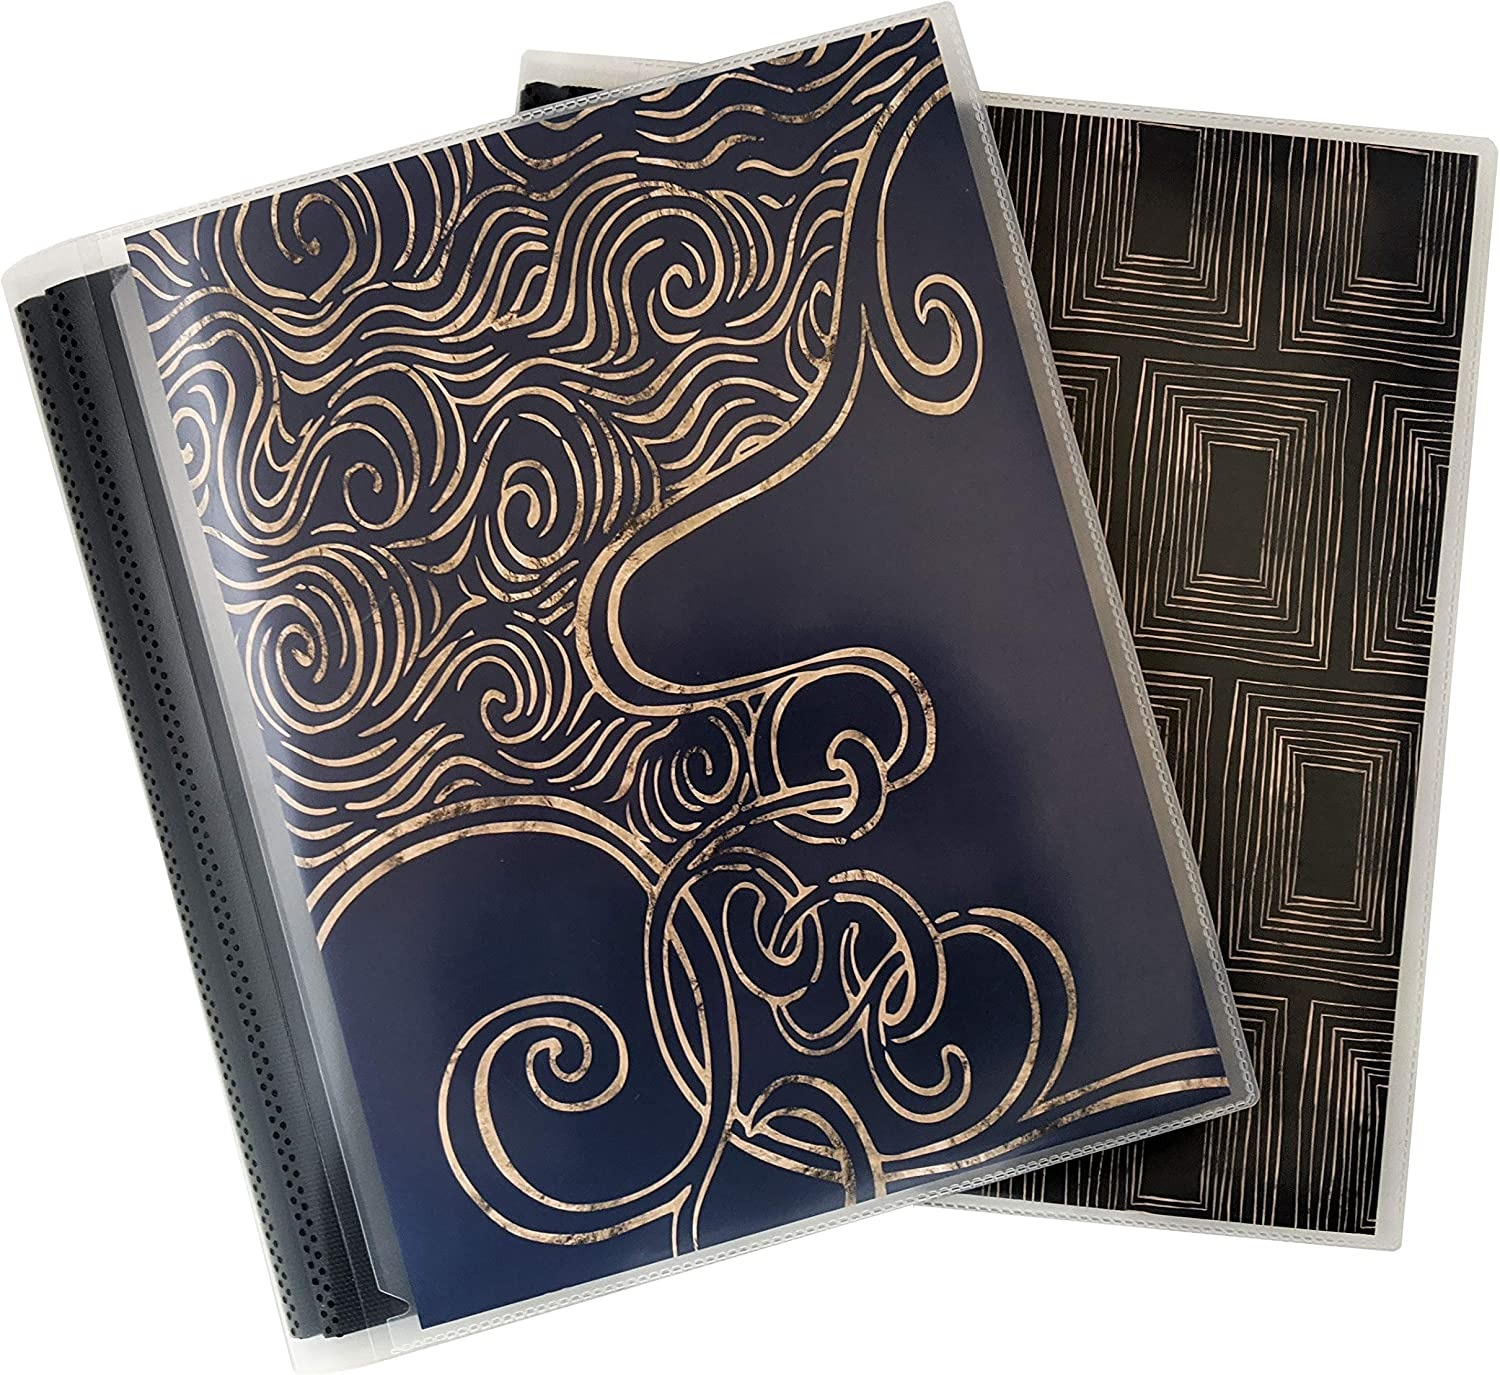 CocoPolka 8x10 Photo Albums Pack of 2 - Each Large Format Flexible Photo Album Holds Up to 48 8x10 Photos in Black Pockets. Removable Covers Come in Elegant Modern Patterns